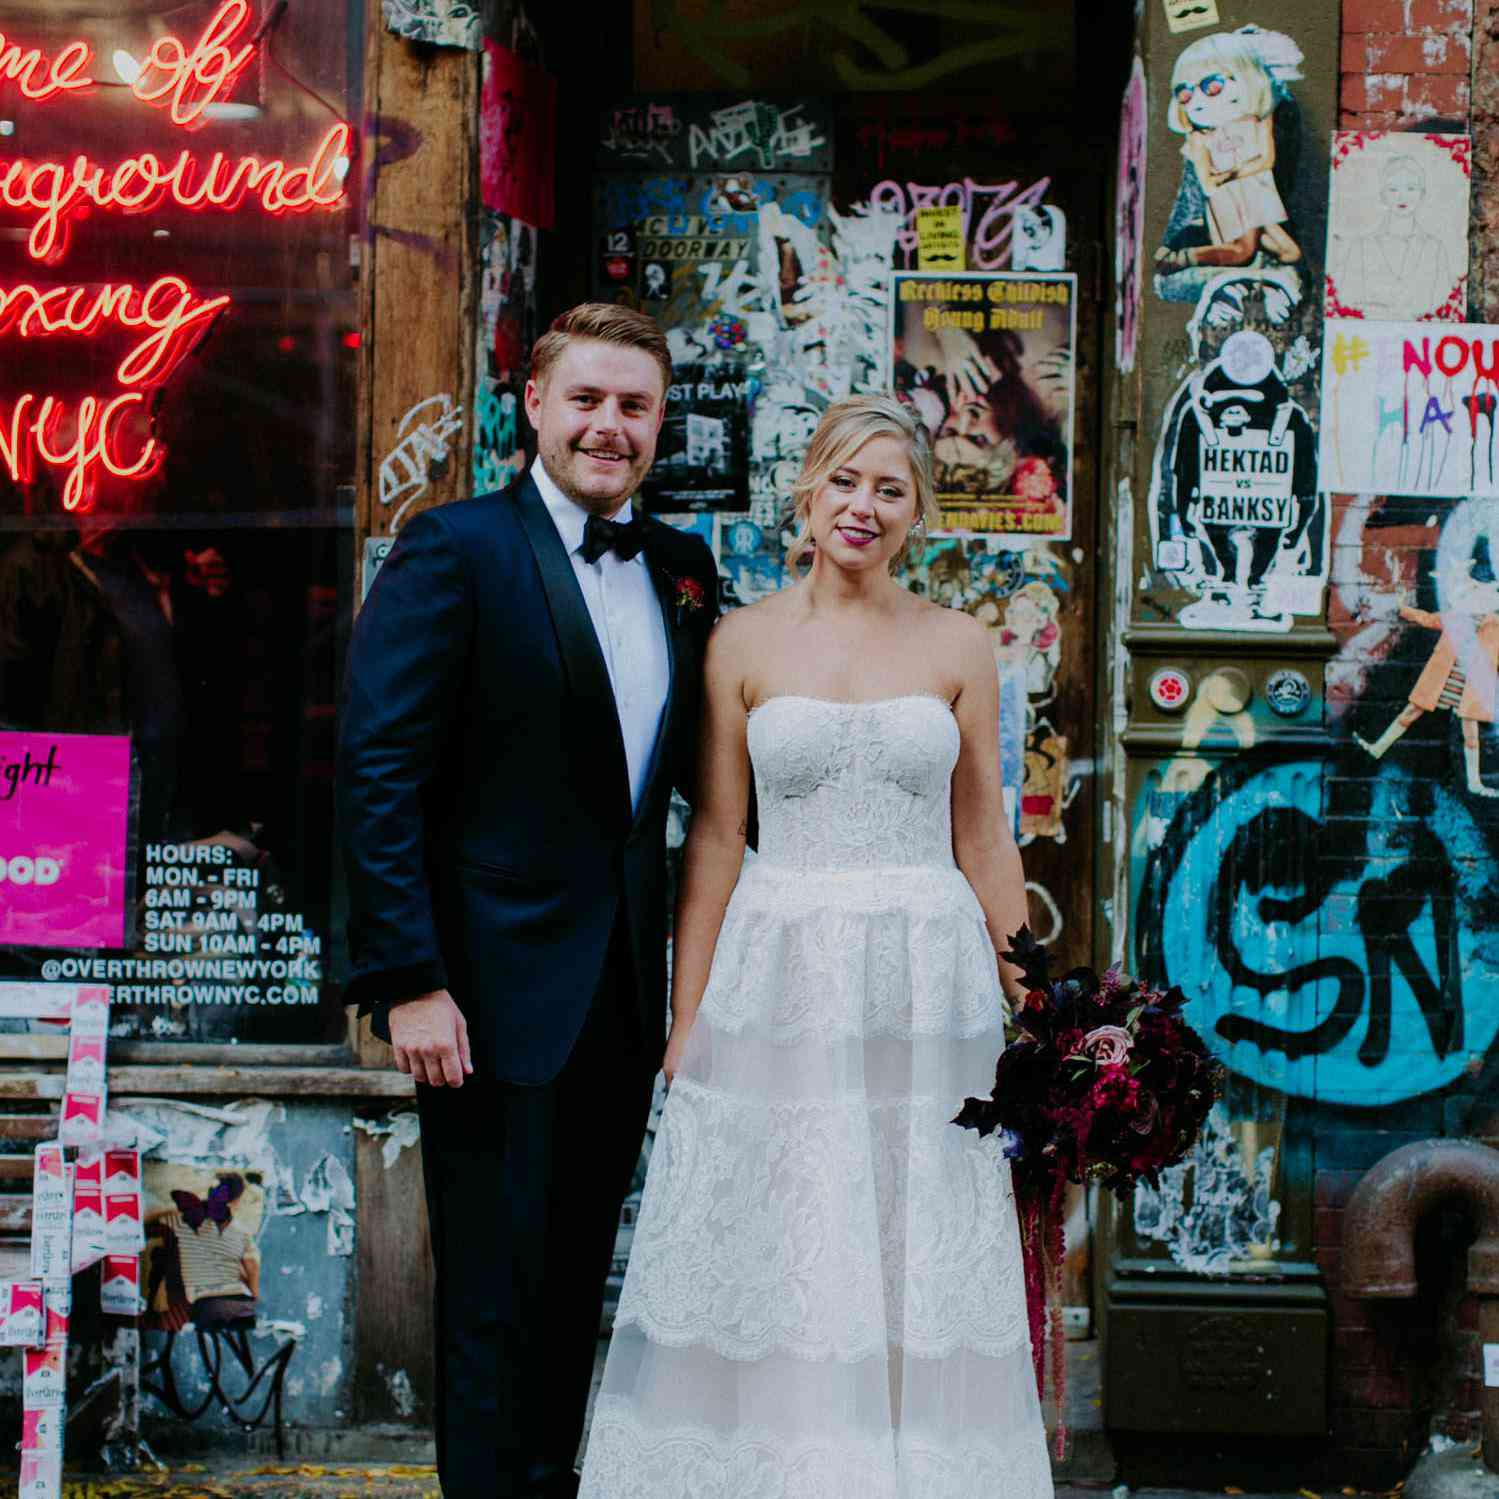 A Beautifully Edgy Wedding Inspired by Beauty and the Beast